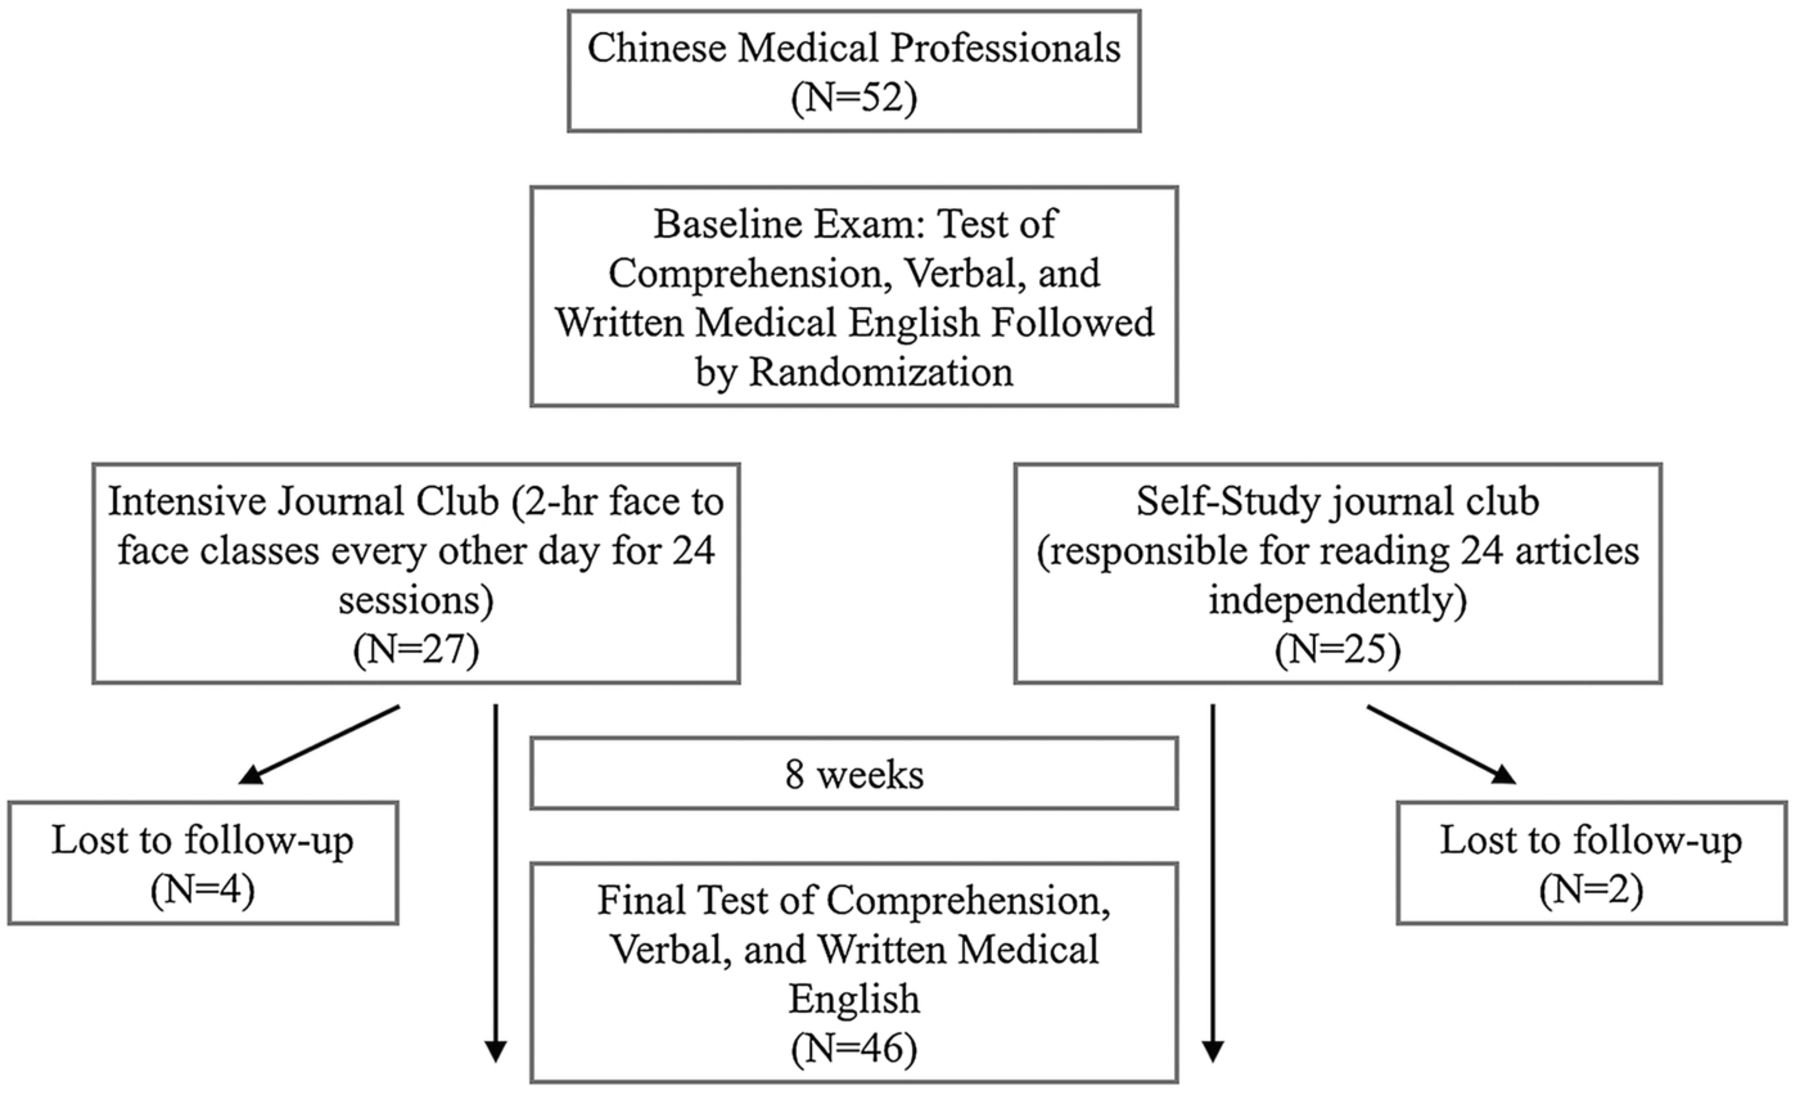 Chinese Obstetrics & Gynecology journal club: a randomised